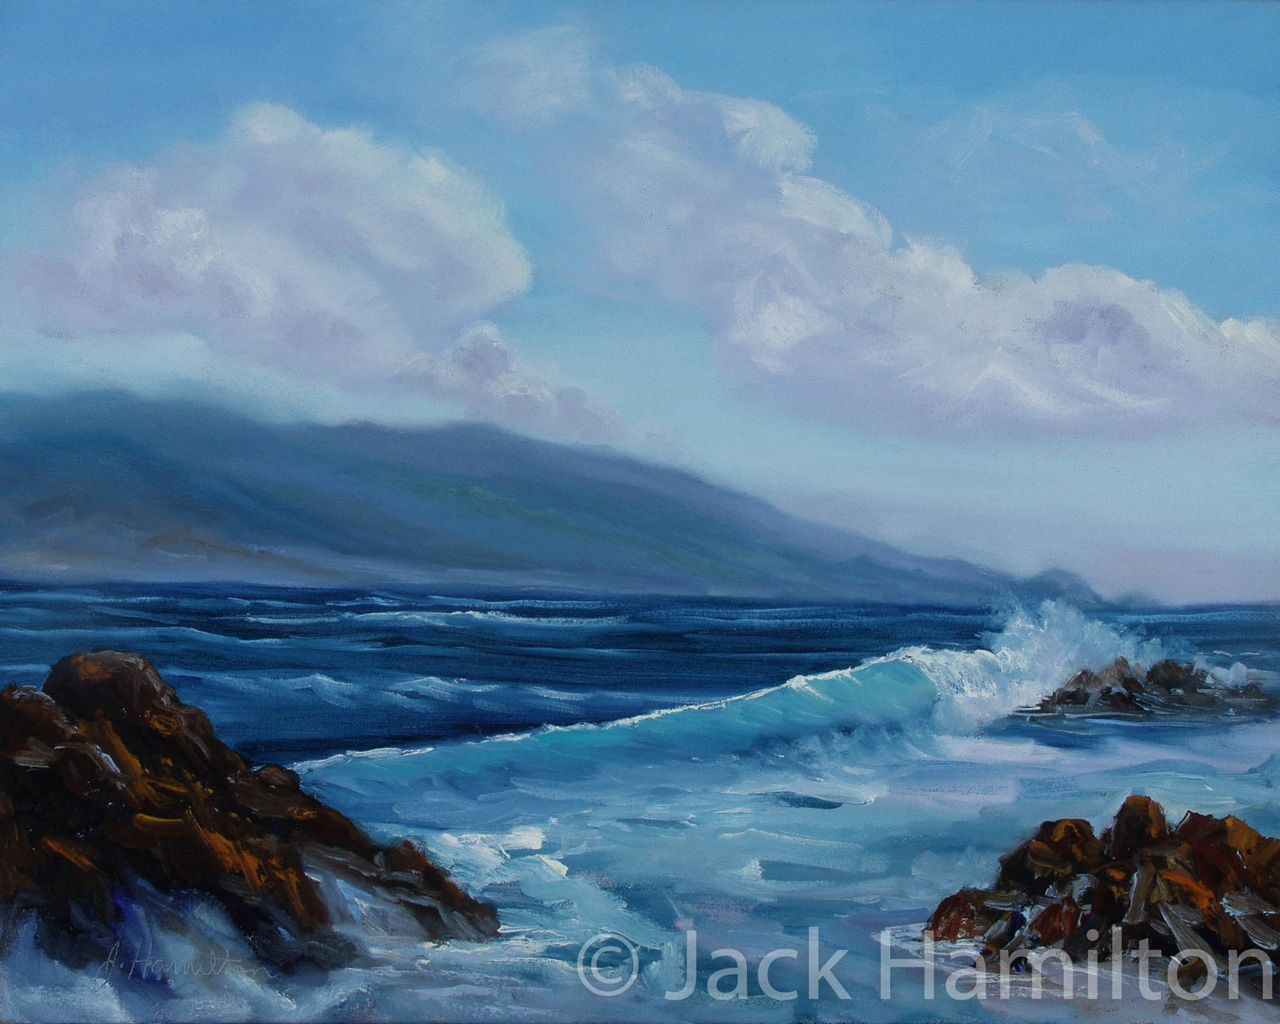 Maui Bursting Wave by Jack Hamilton oil on canvas